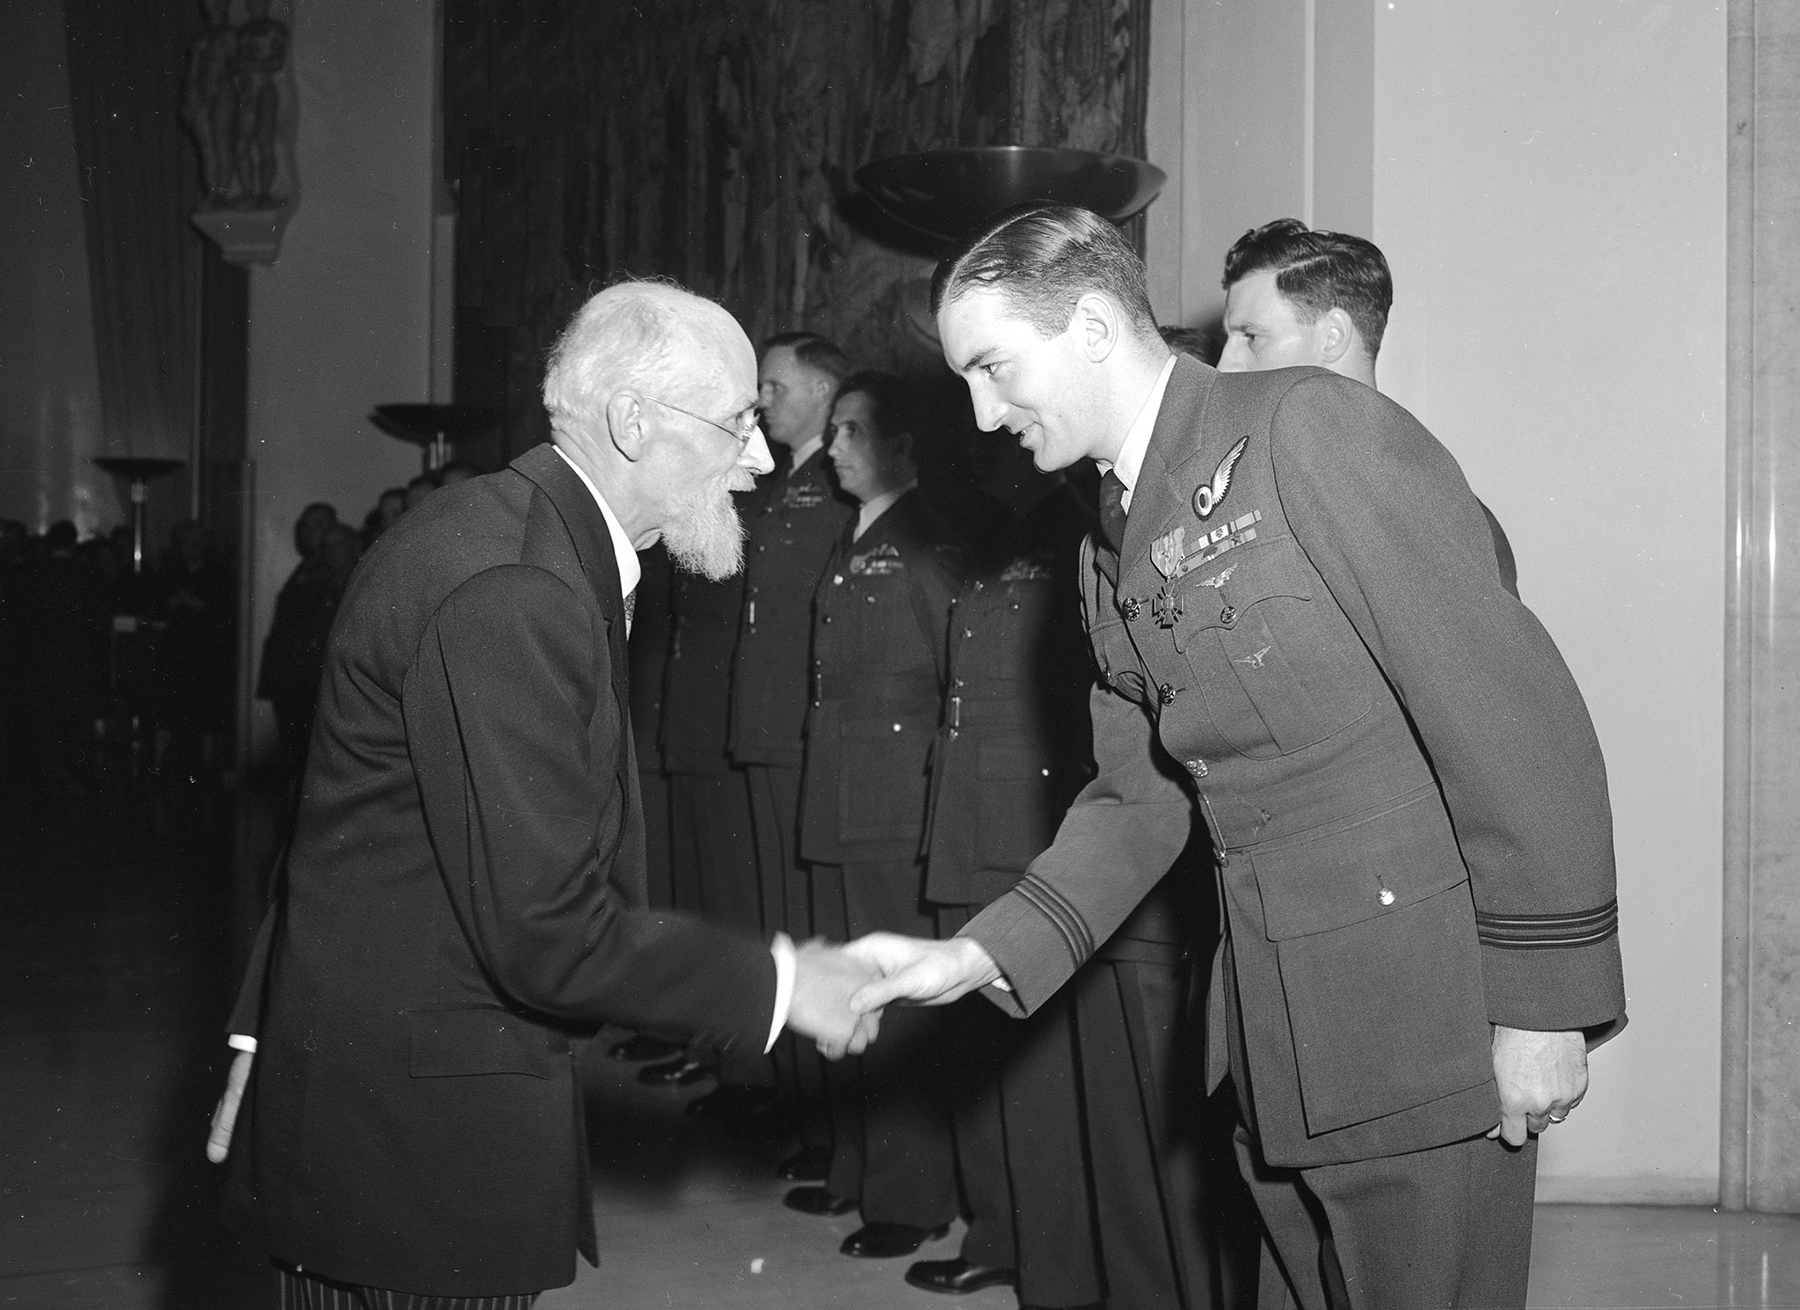 Flight Lieutenant A.M. Ogilvie, DFC, is congratulated by France's Ambassador Francisque Gay on Remembrance Day, November 11, 1947, after having received the Croix de Guerre with Gilt Star and having been cited to the Ordre de le Brigade Aerienne of France. Sixteen RCAF officers were honoured during the ceremony held at the French Embassy in Ottawa, Ontario. PHOTO: DND Archives, PL-39418